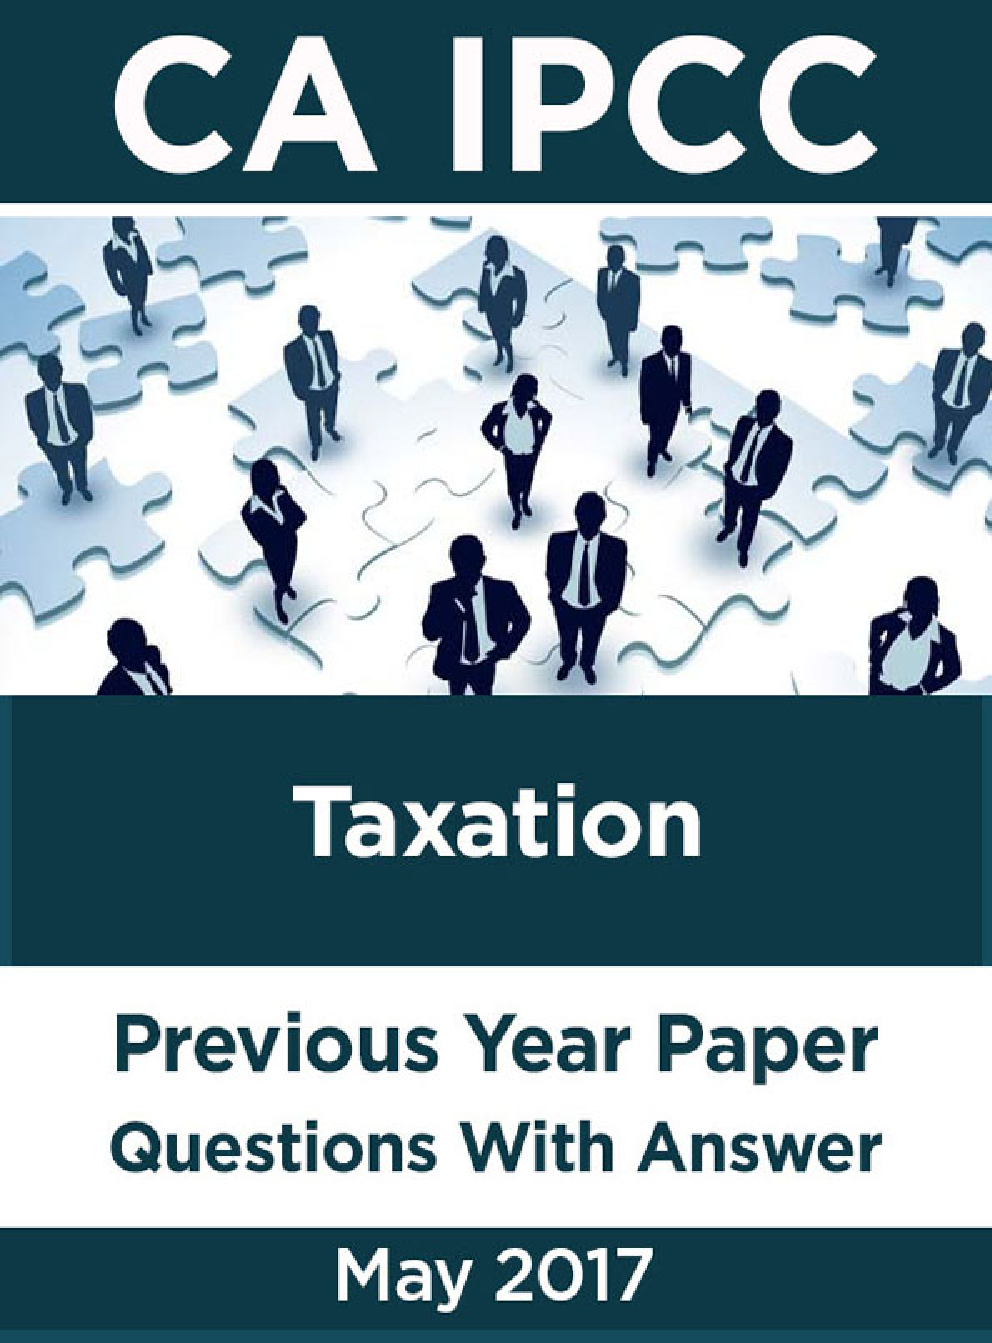 CA IPCC For Taxation May 2017 Previous Year Paper Question With Answer - Page 1